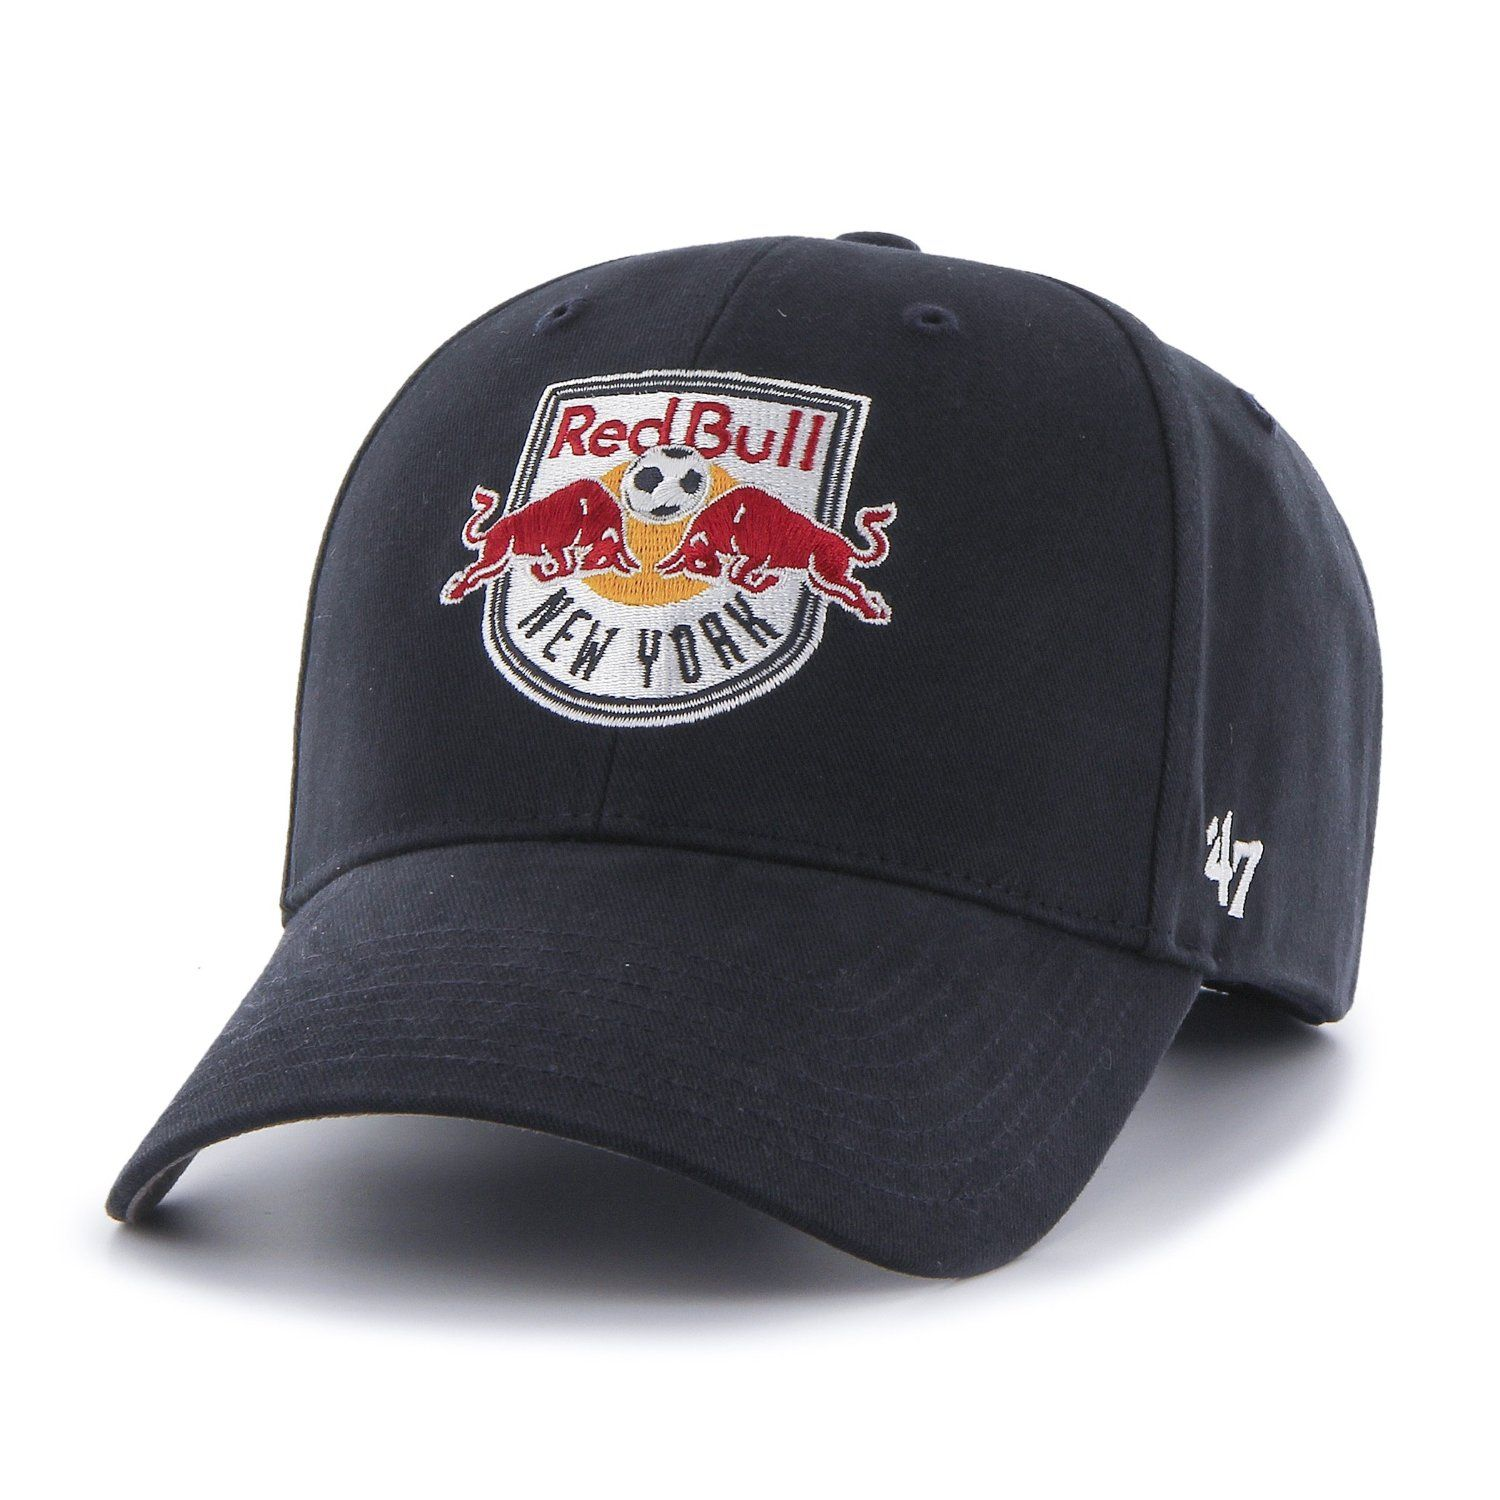 Pin by New York Sports Caps   Hats on New York Red Bulls Caps   Hats ... e7fa8decb97b